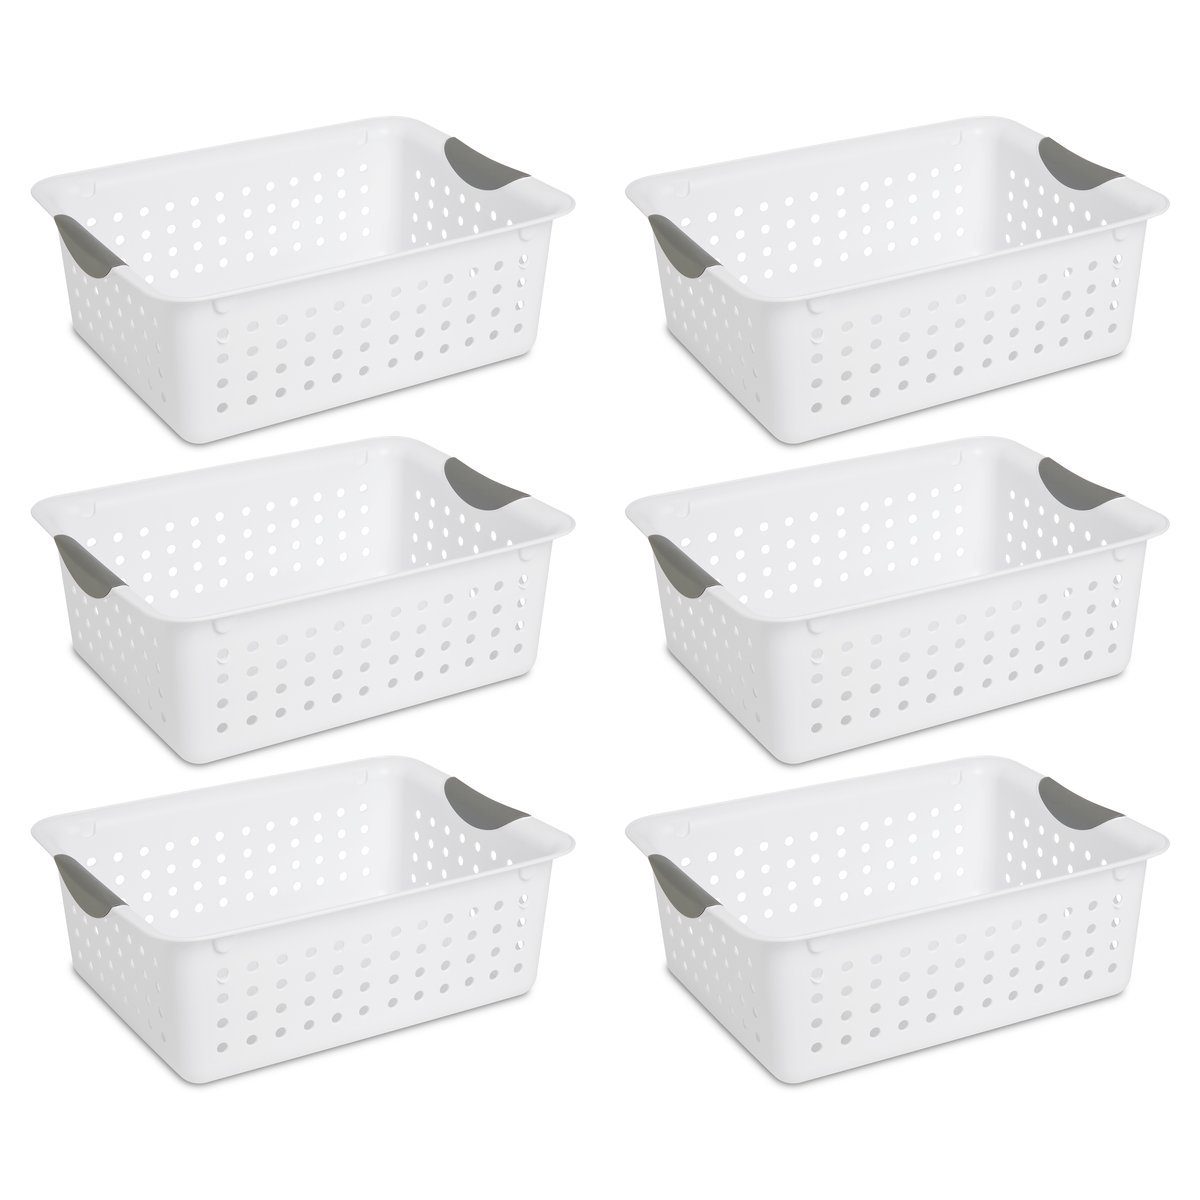 STERILITE 16248006 Medium Ultra Basket, White Basket w/Titanium Inserts, 6-Pack by STERILITE (Image #1)